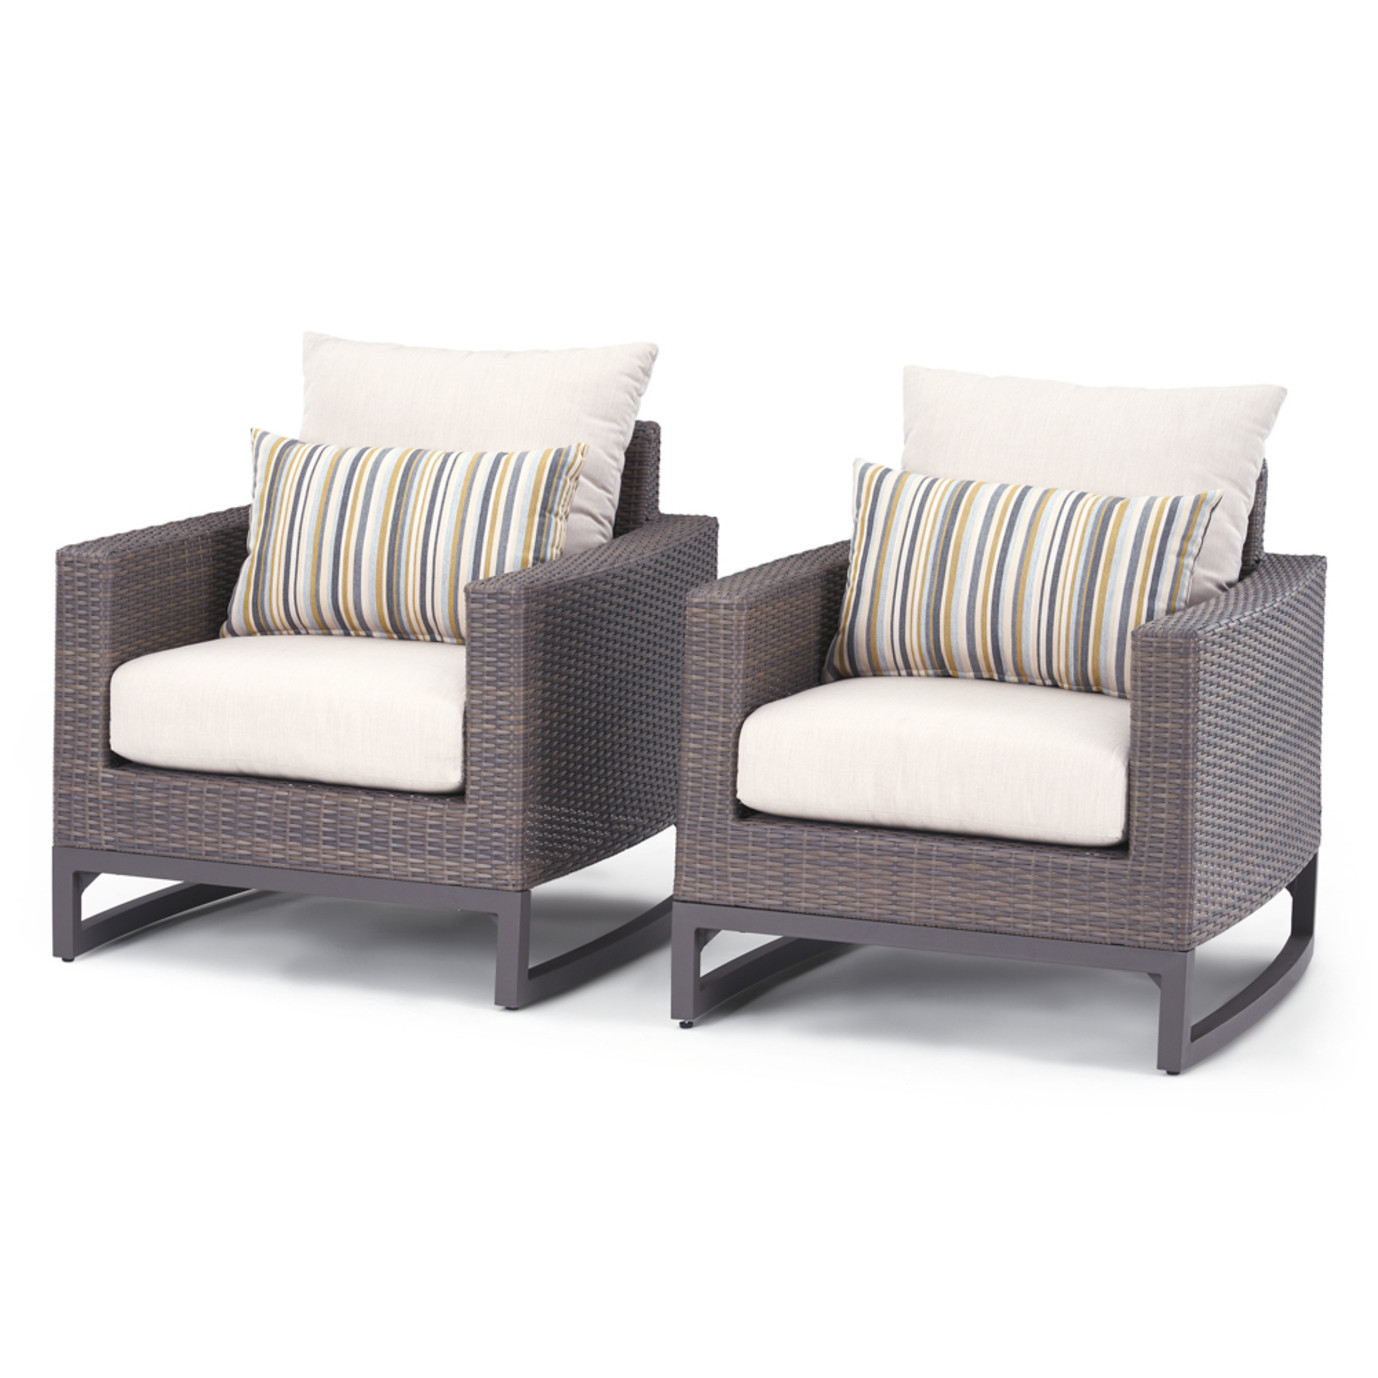 Milea™ Club Chairs - Natural Beige